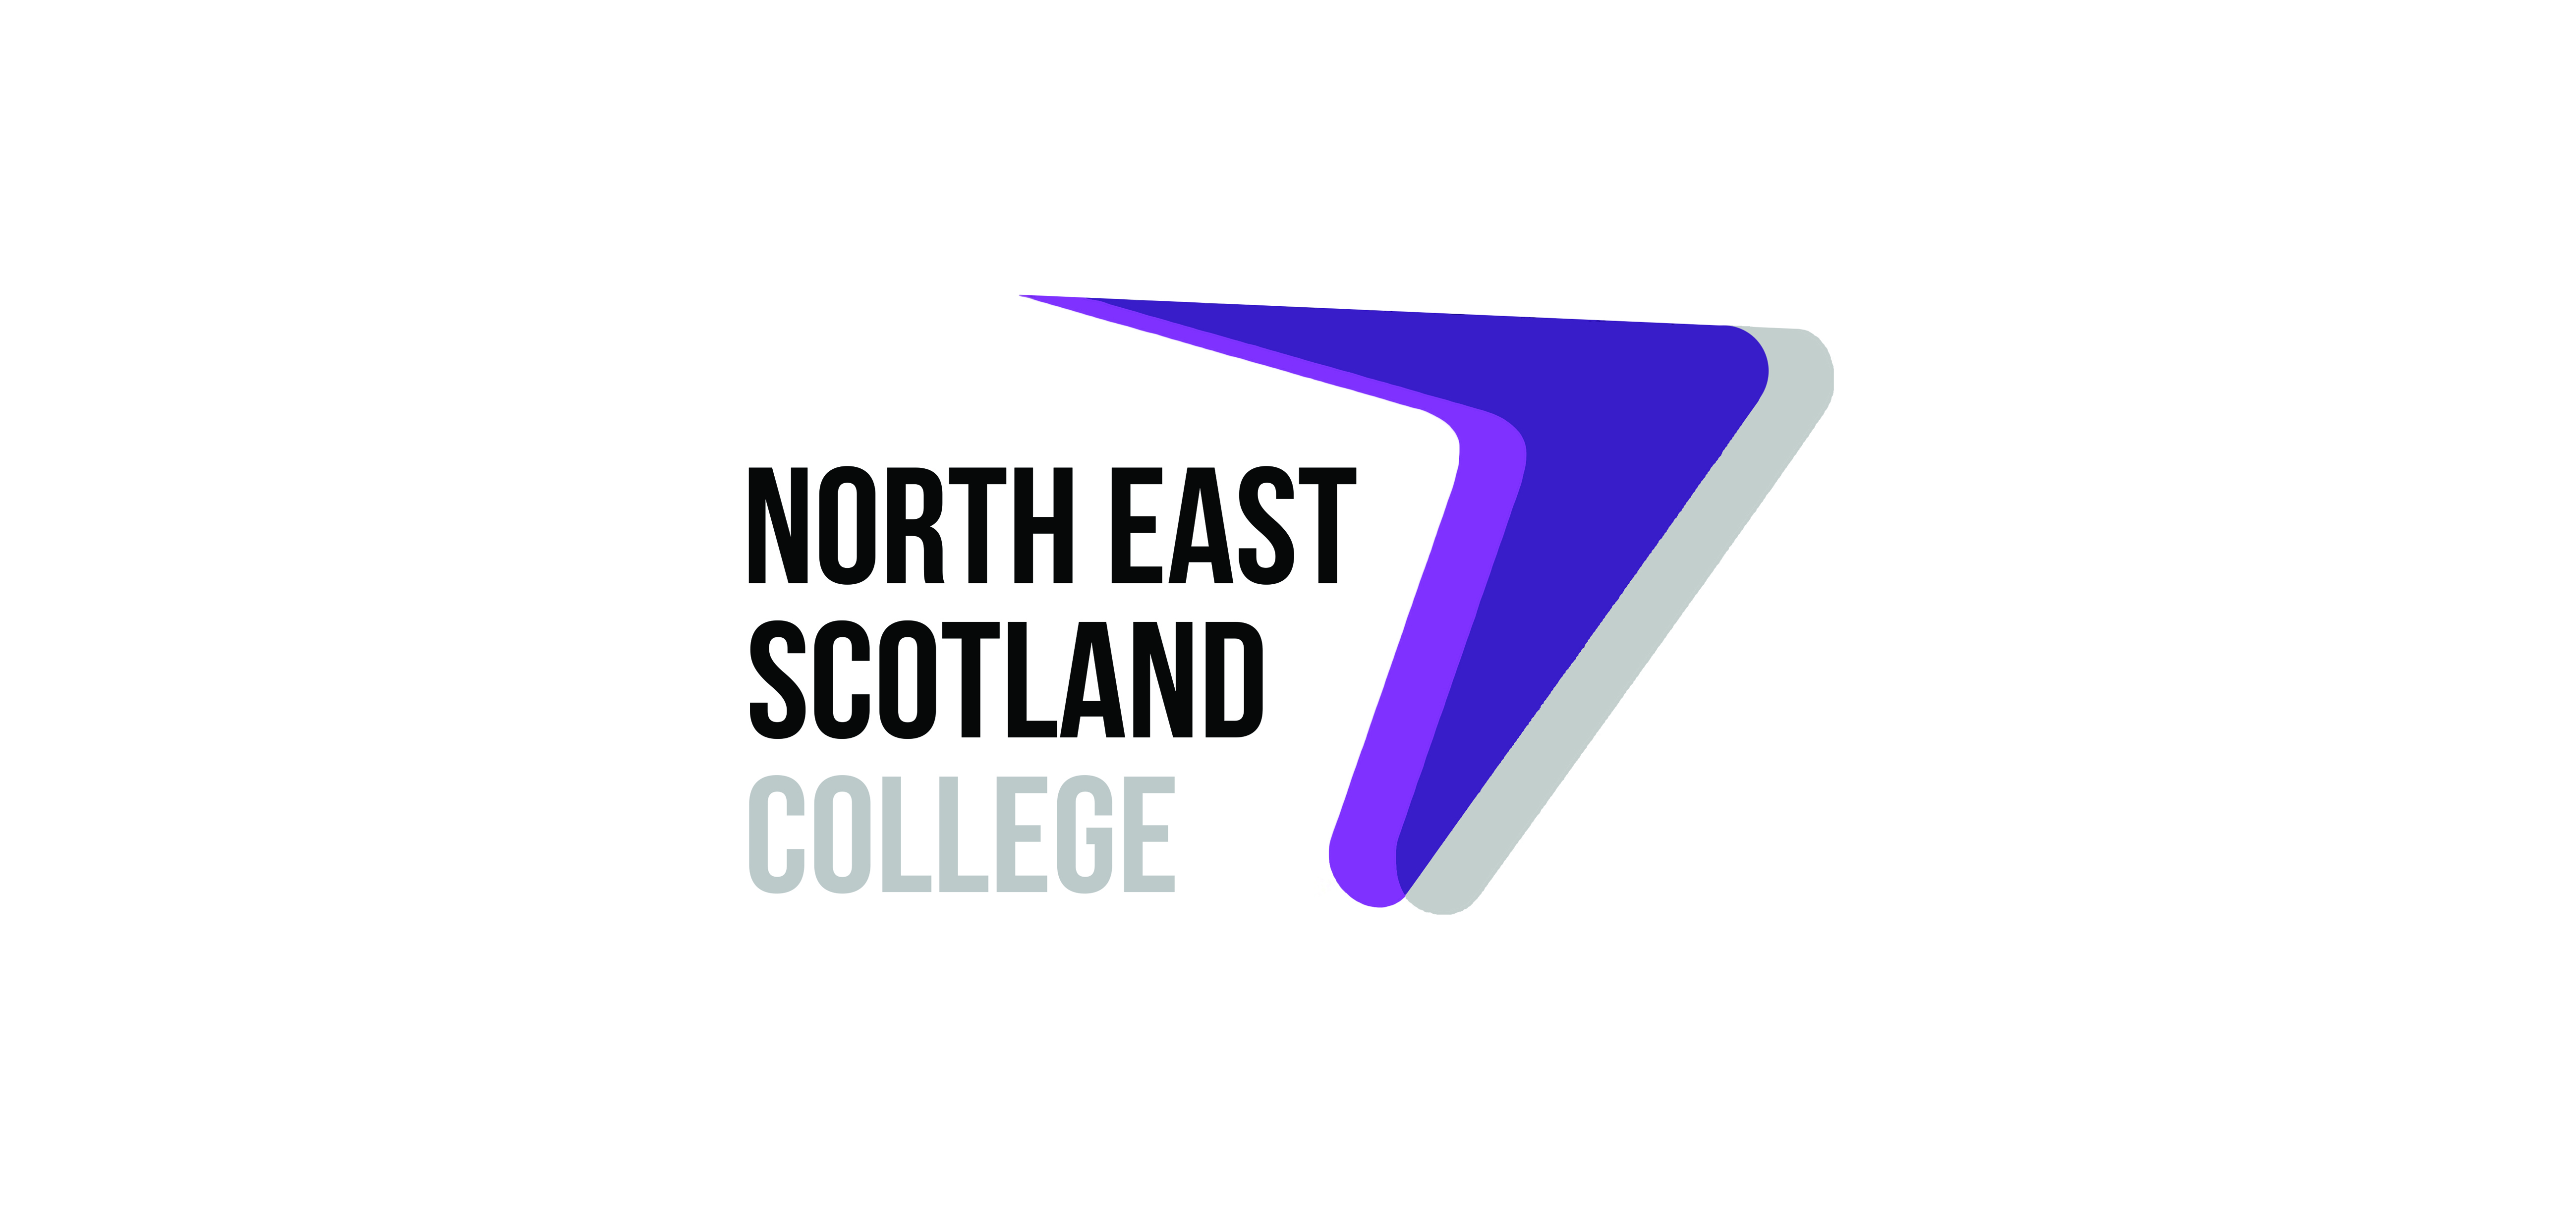 Visit North East Scotland College website